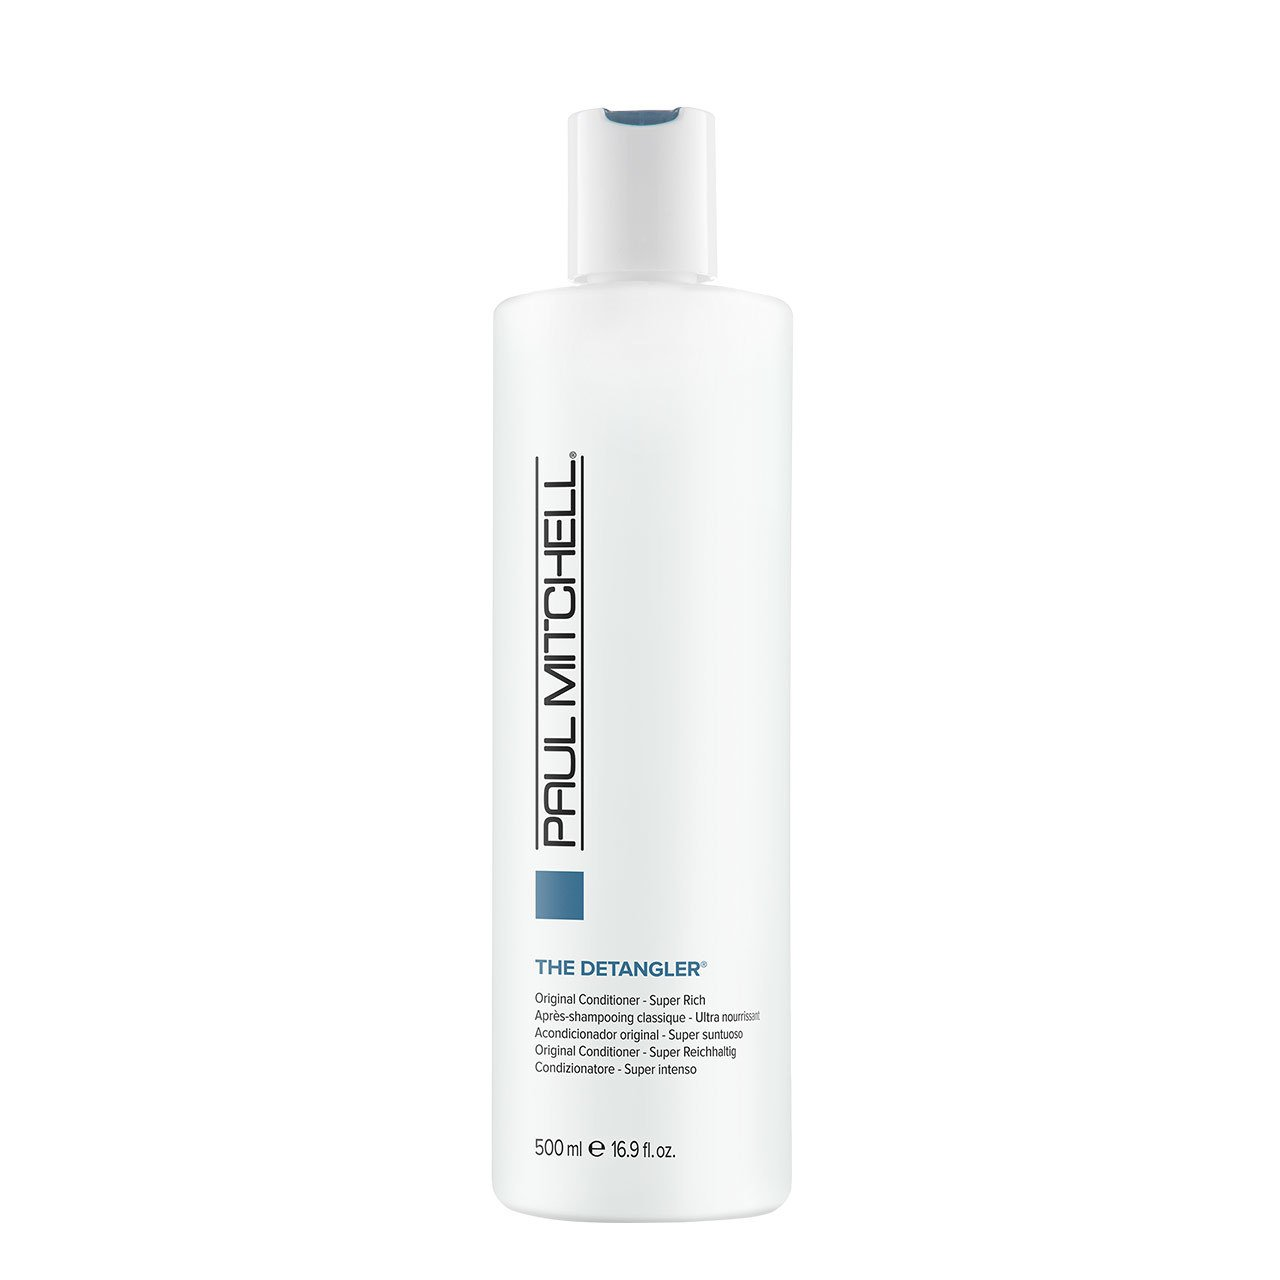 Paul Mitchell - The Detangler Conditioner 500 ml